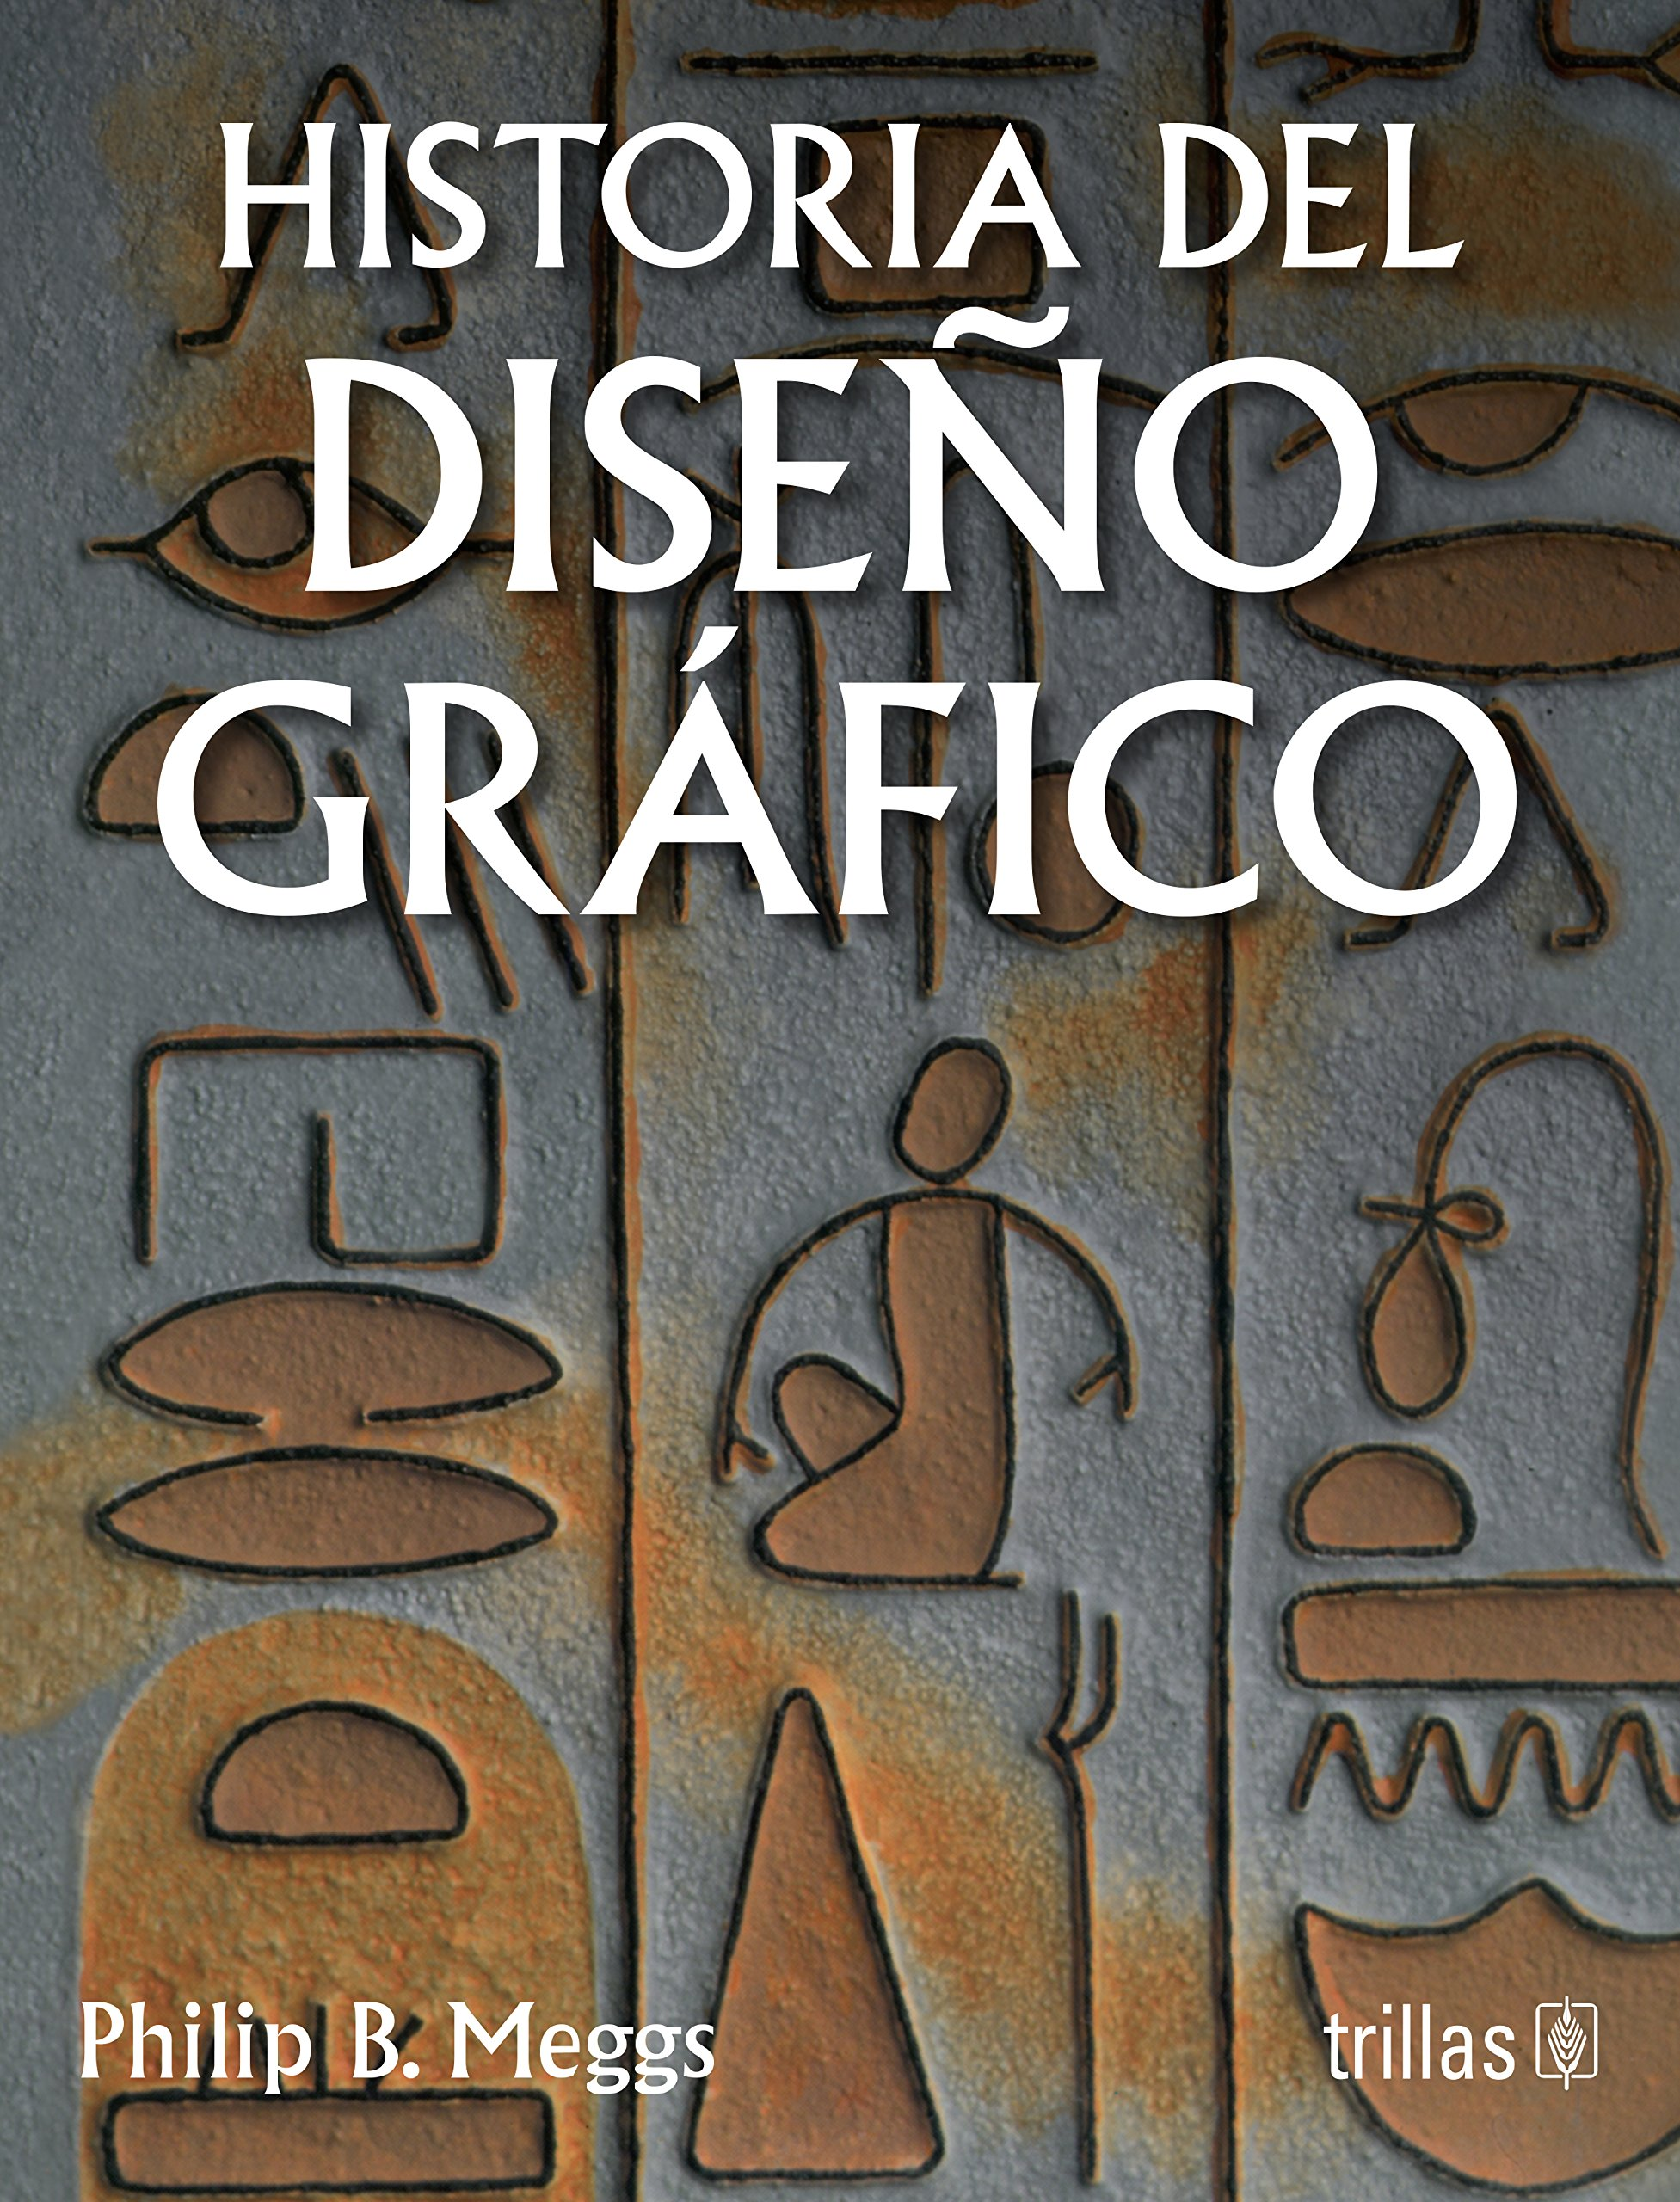 Historia del diseno grafico / A History of Graphic Design (Spanish Edition)